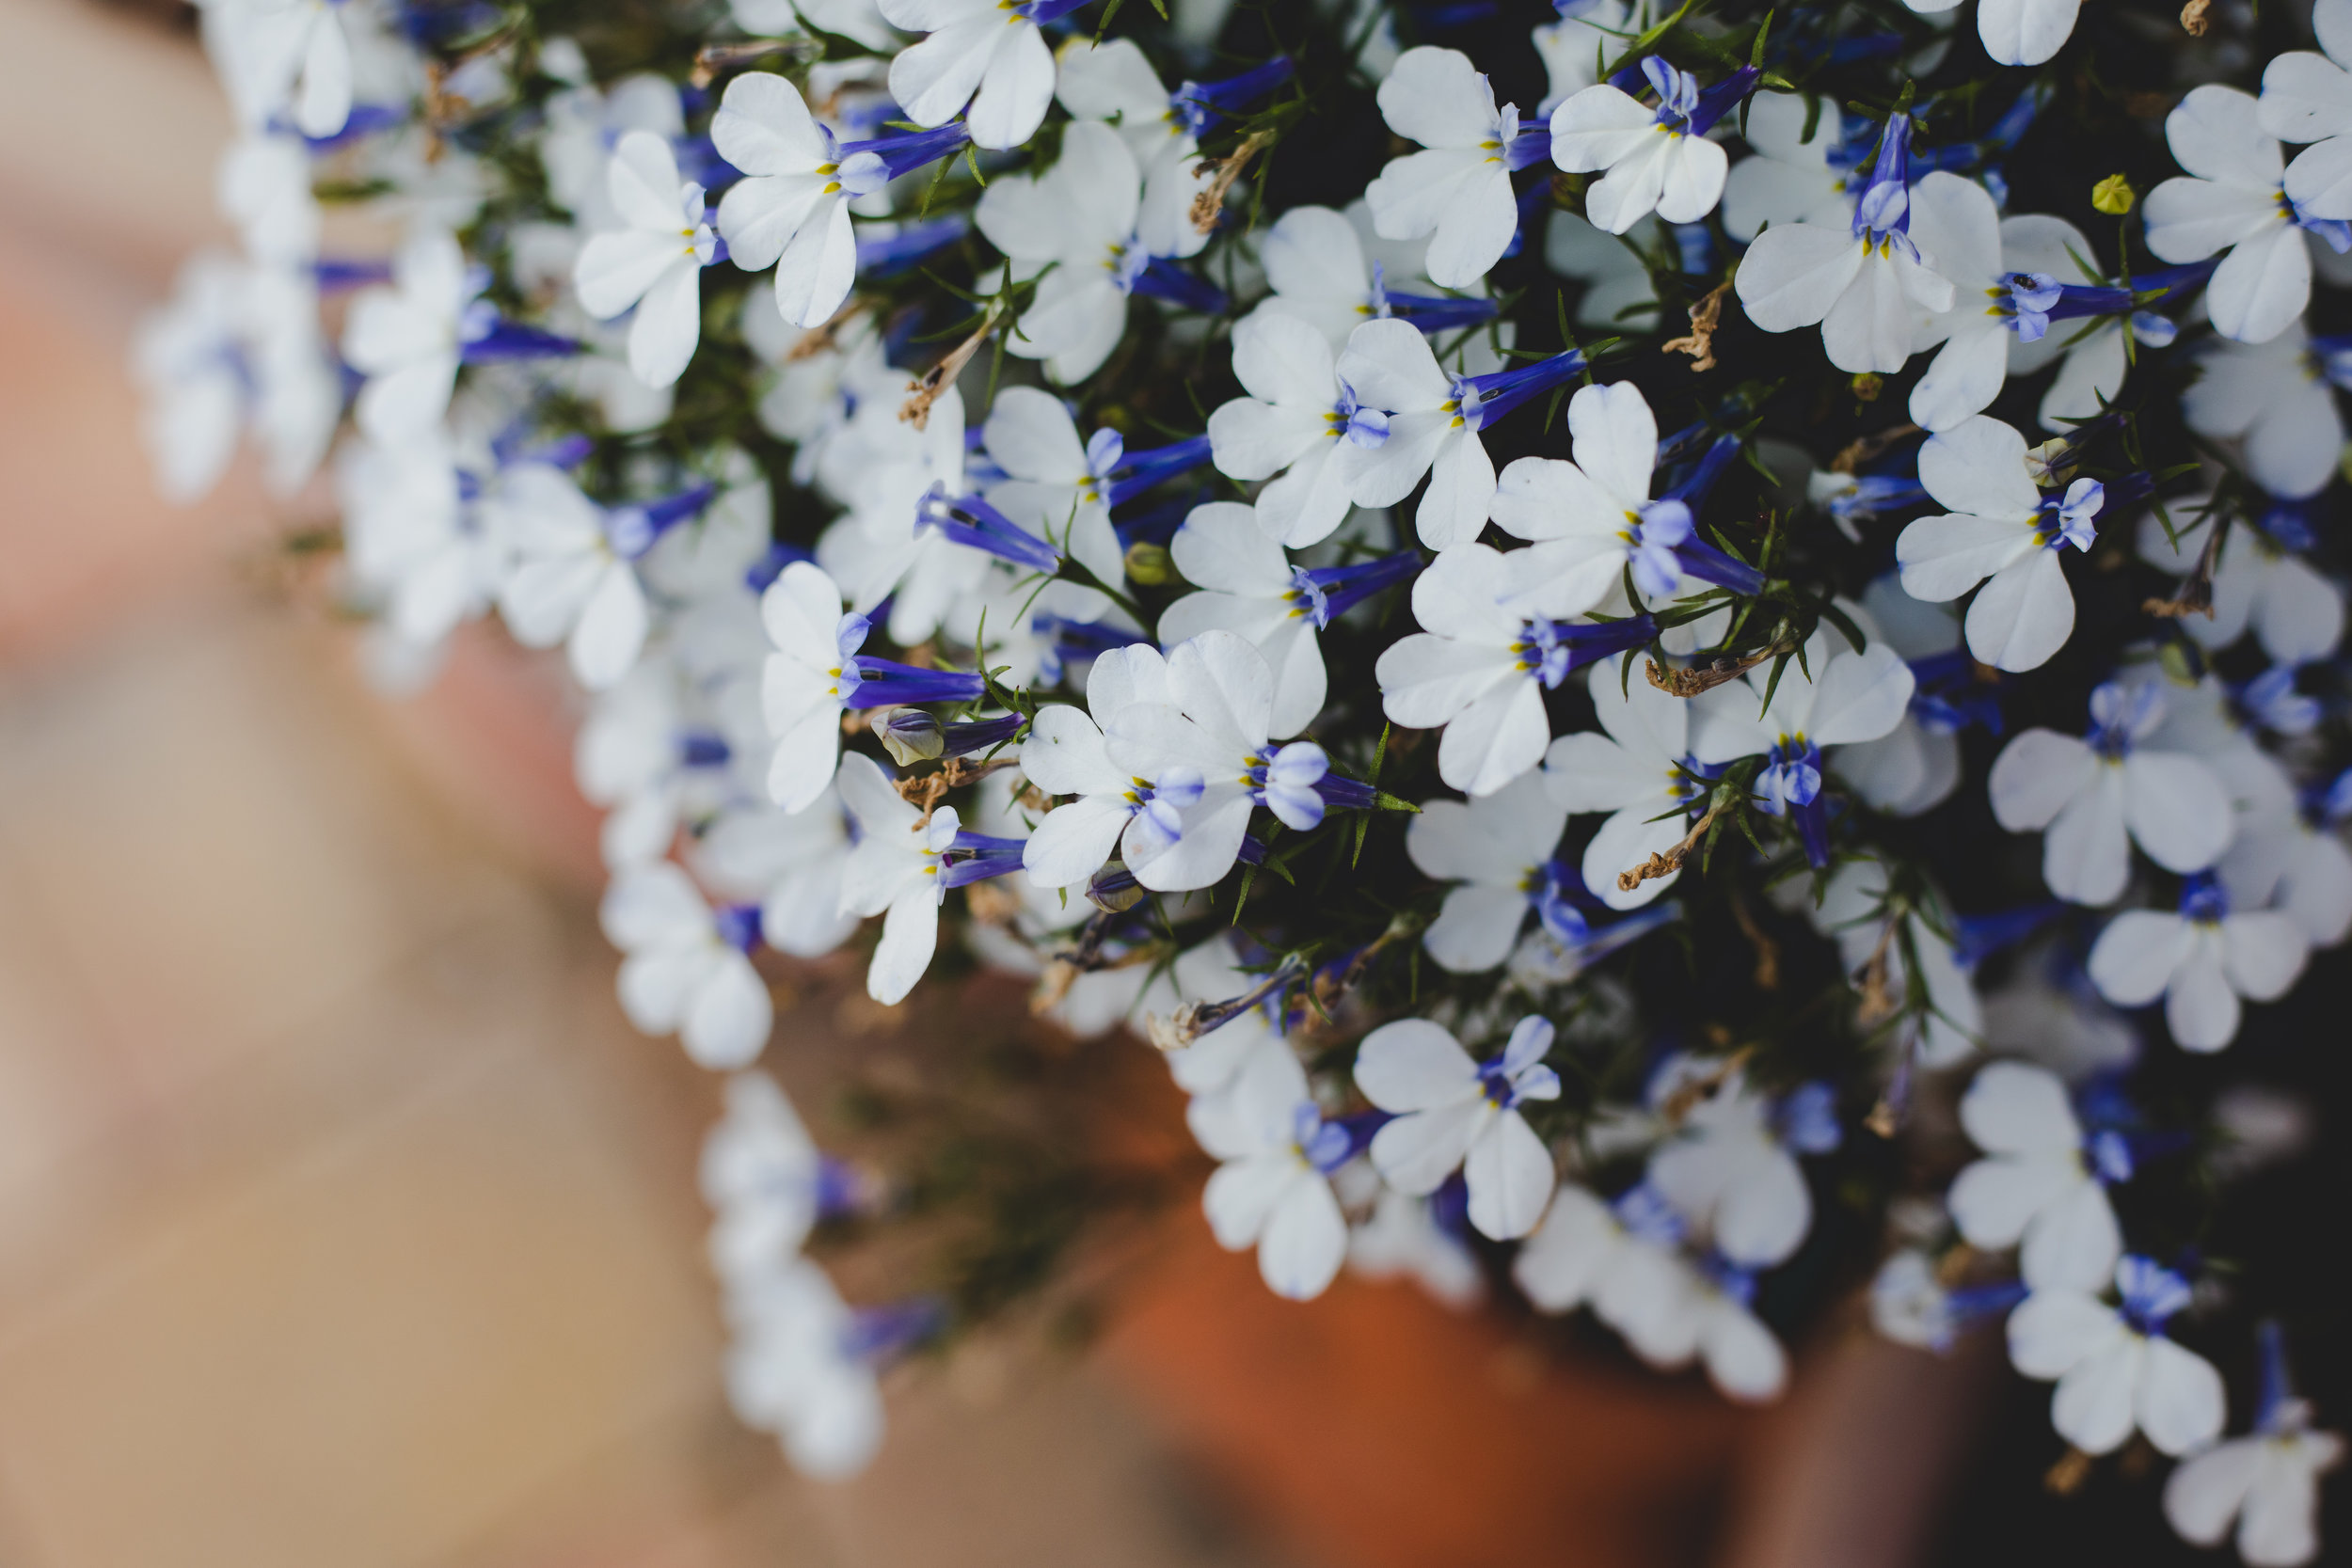 A sprinkle of blue and white